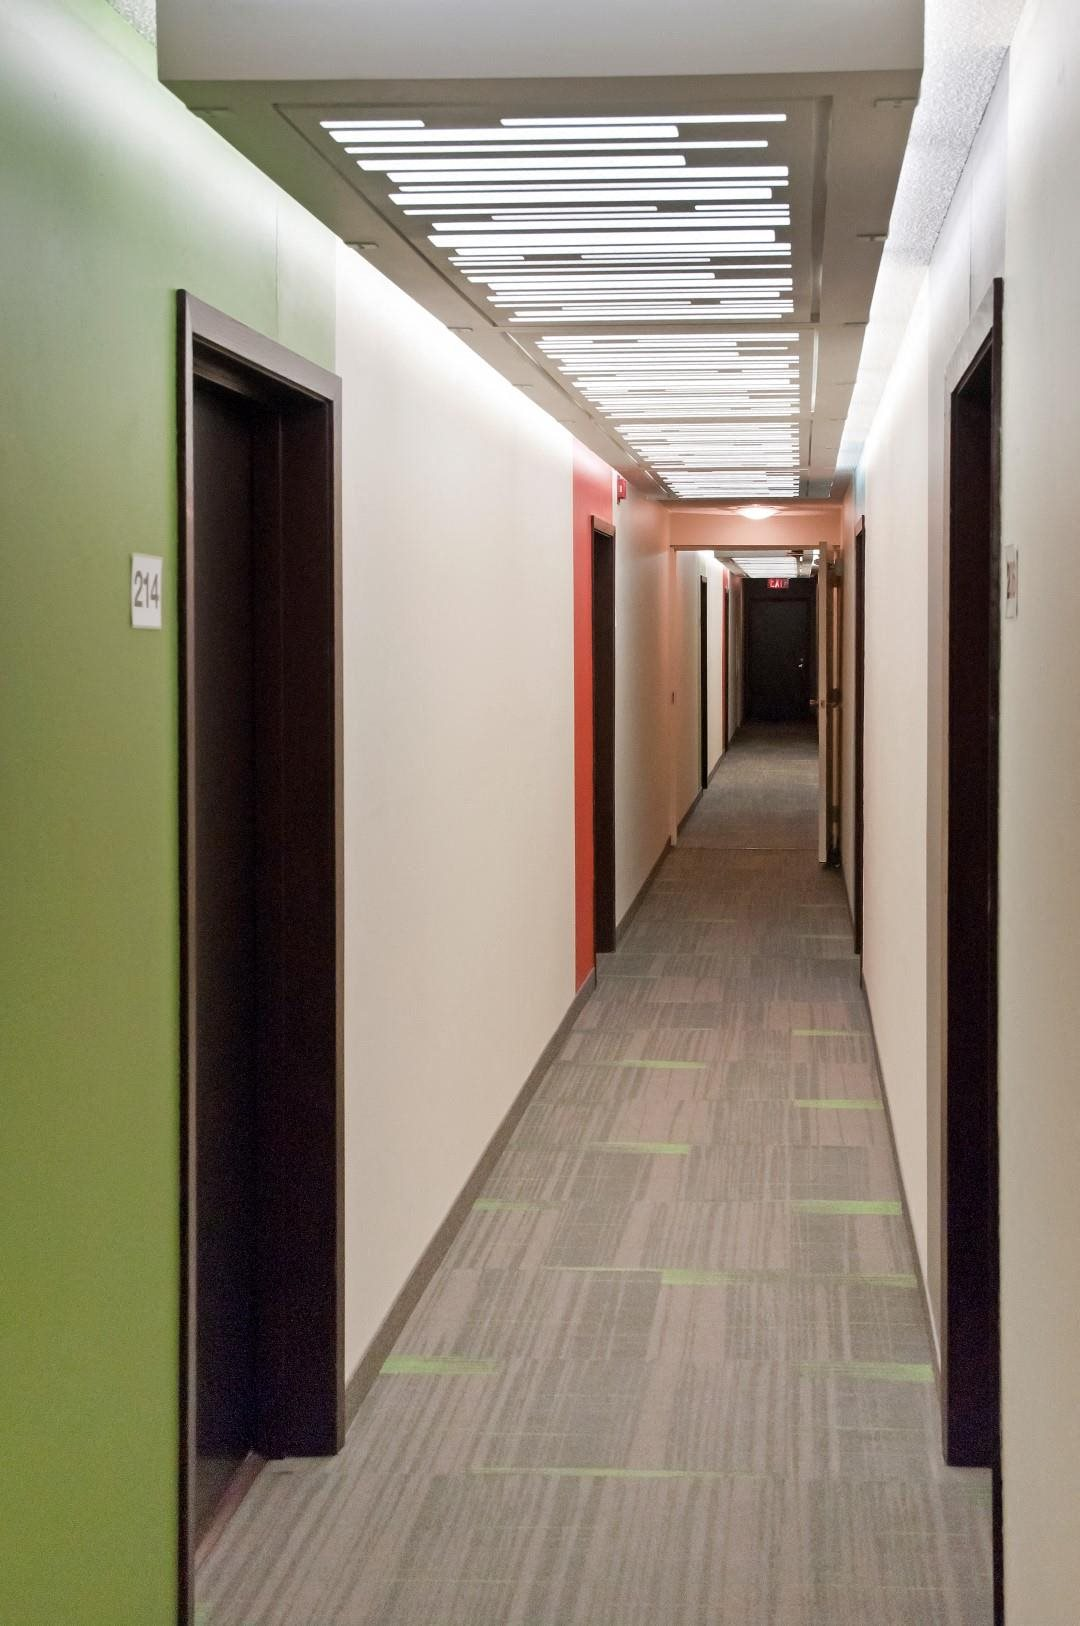 Bright Multicolored Hallway at 2800 Girard Apartments